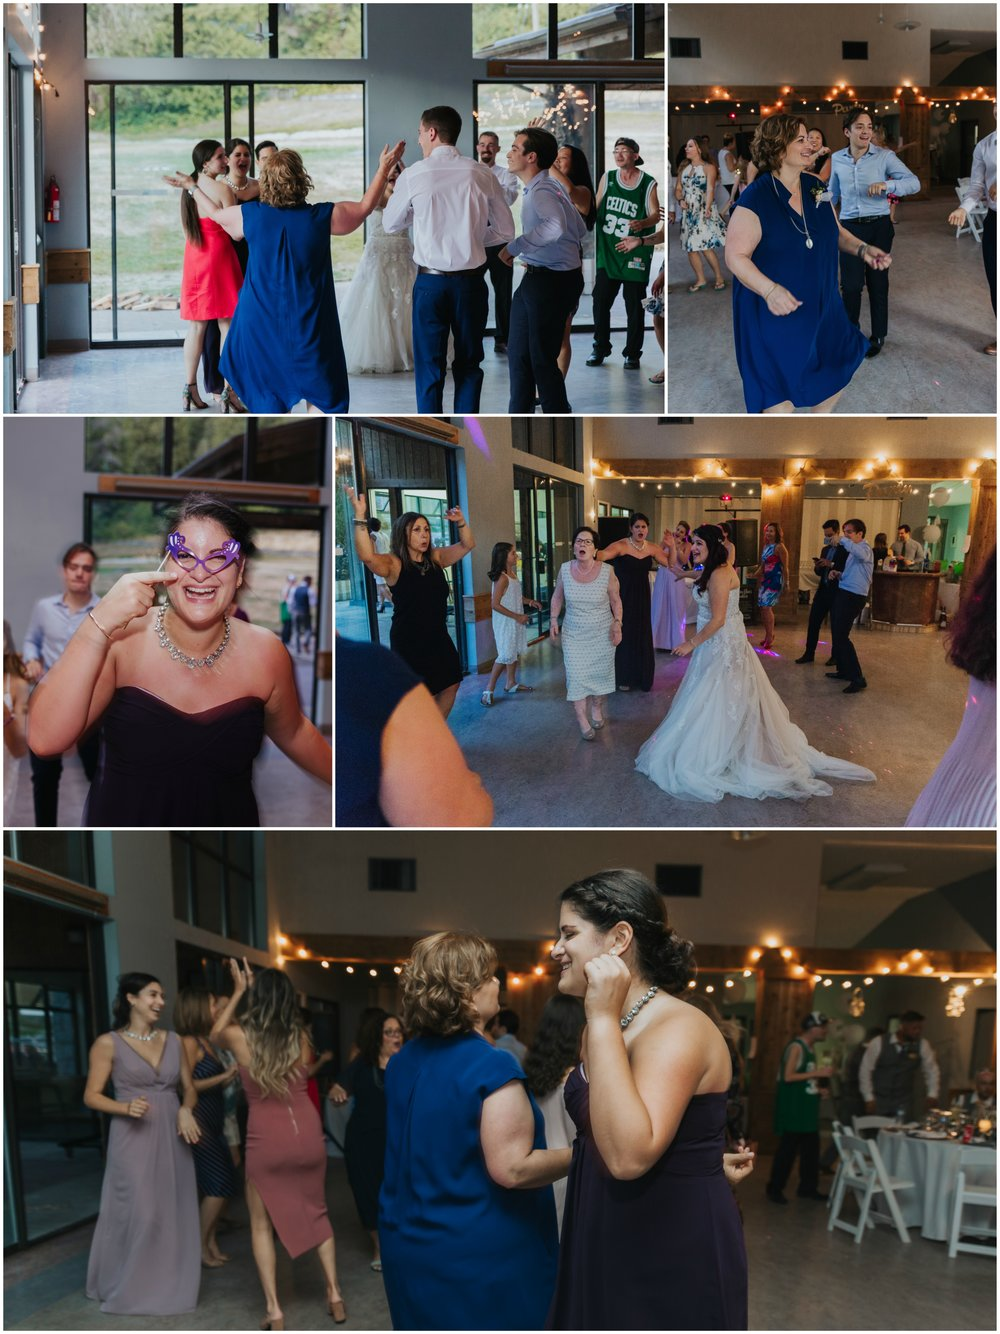 Camp Howdy Rustic Cabin Wedding dance.jpg